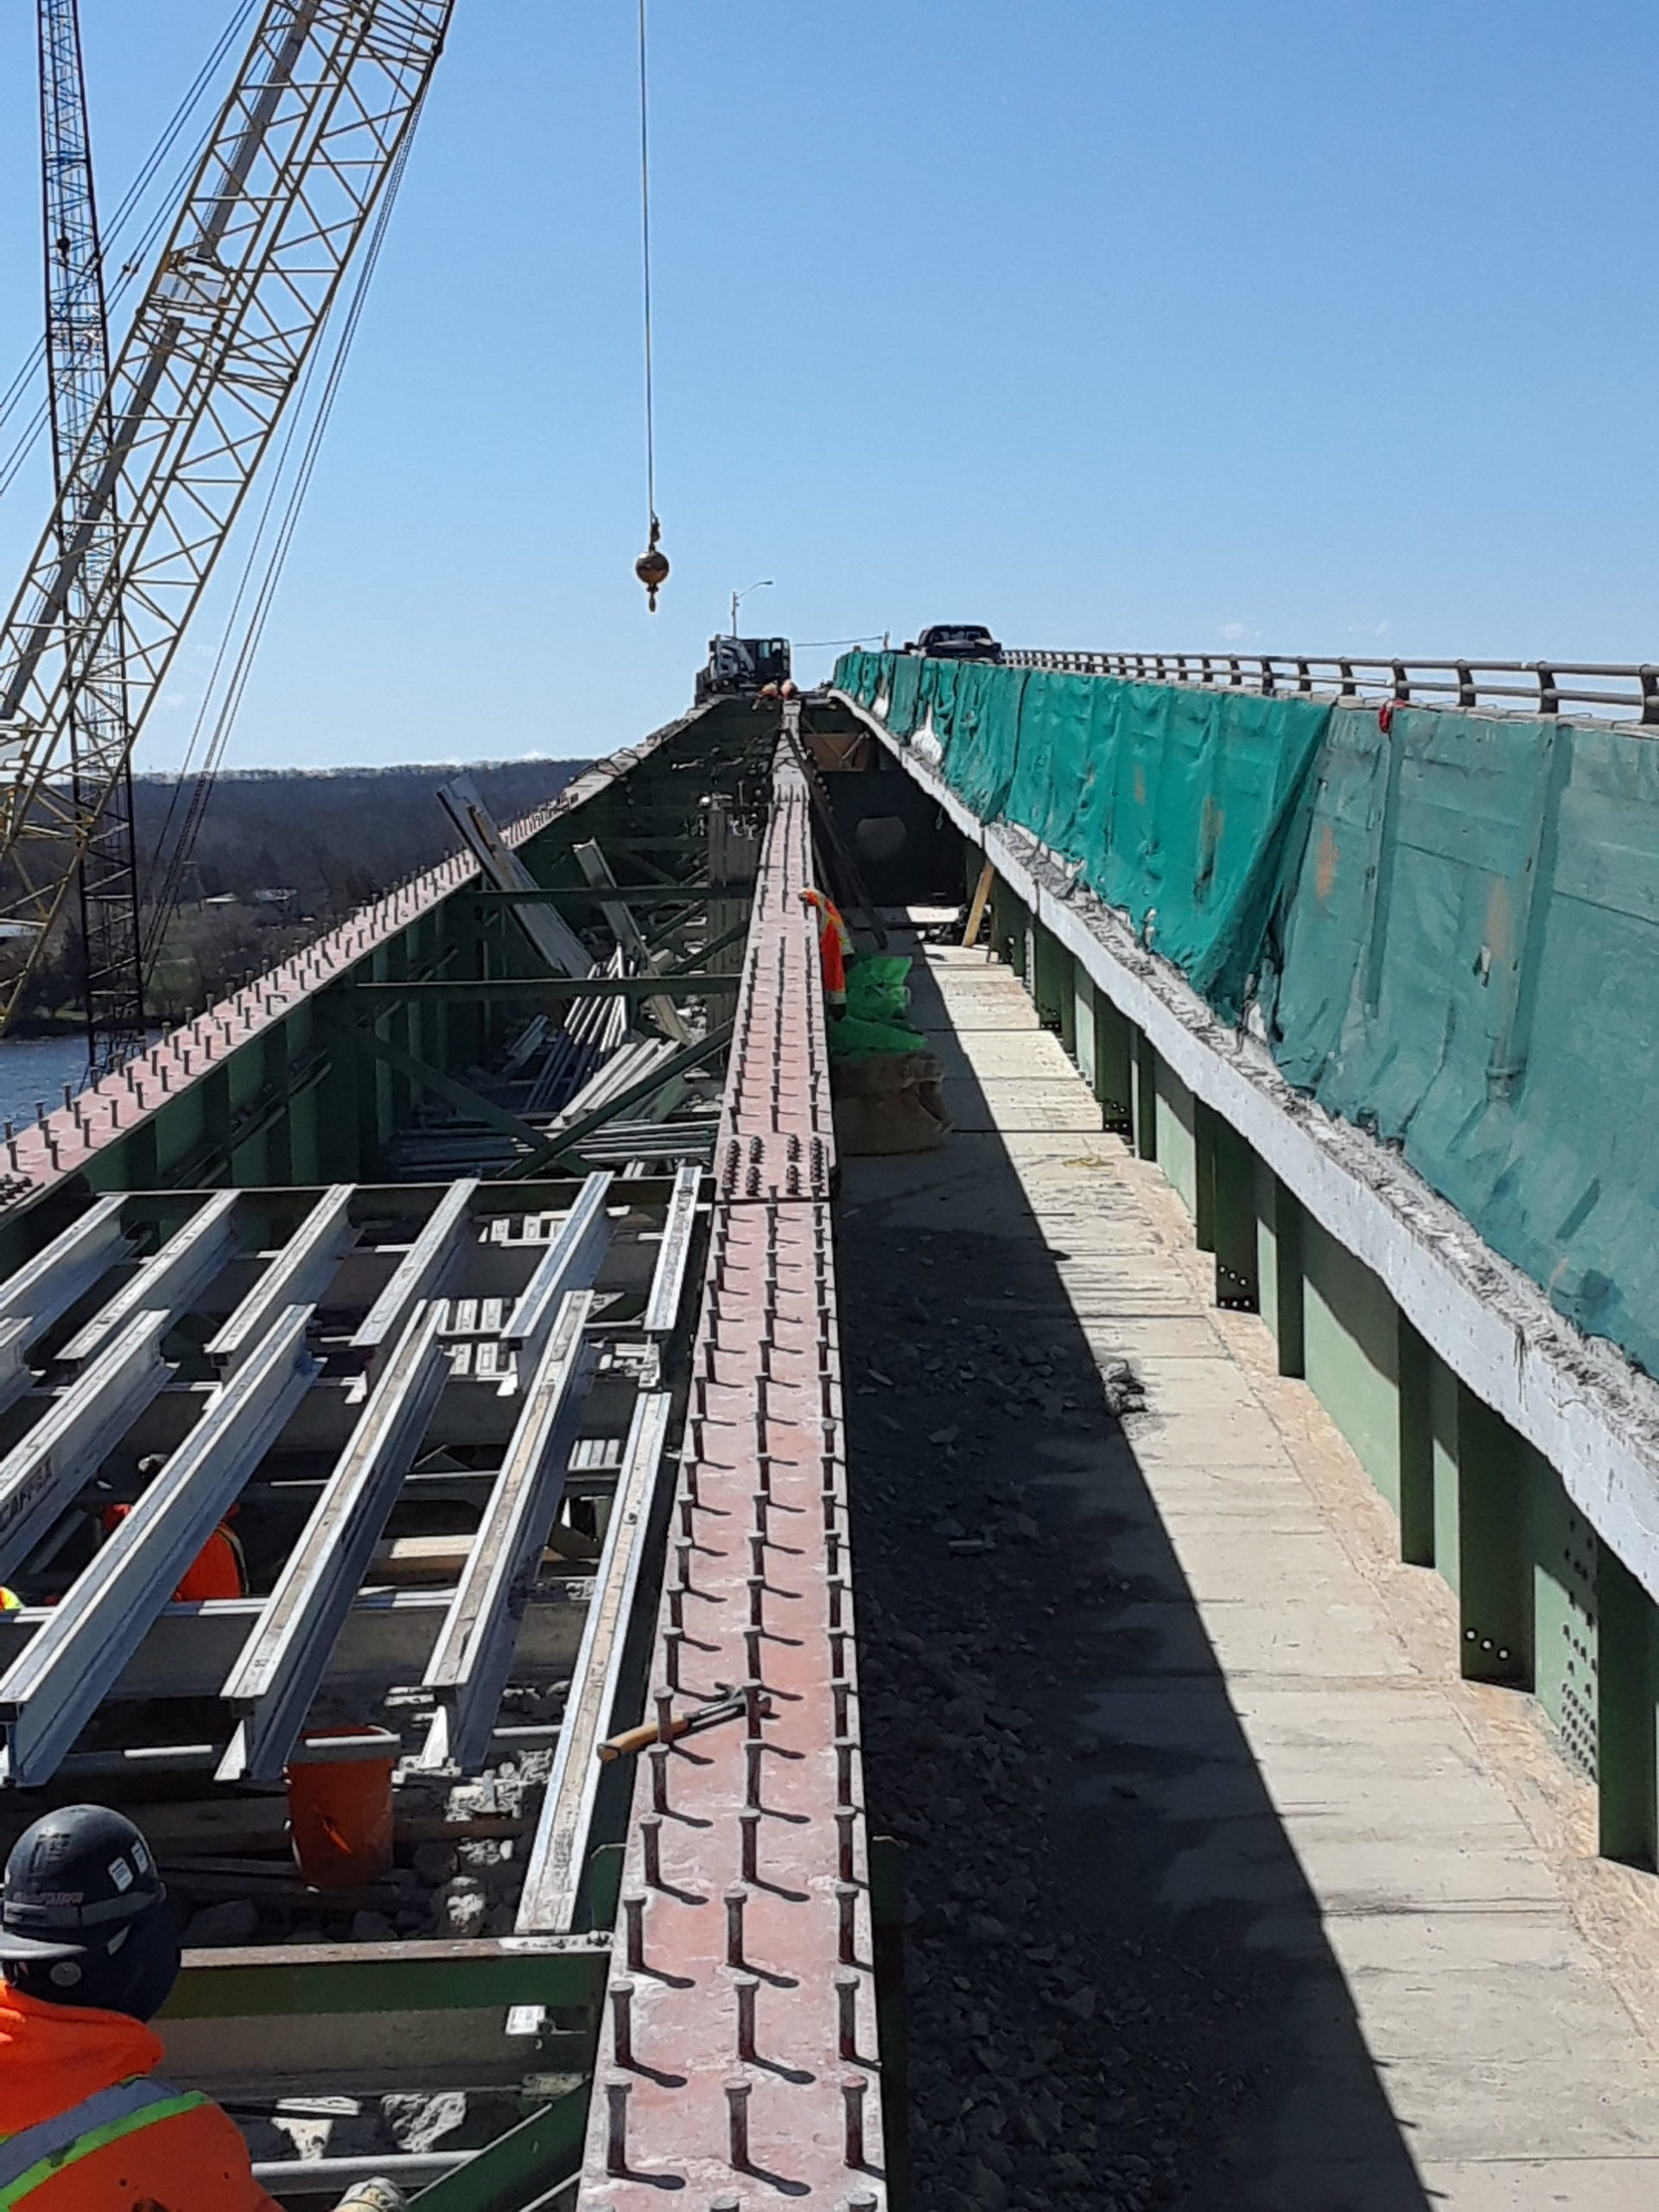 Exposed girders and false decking